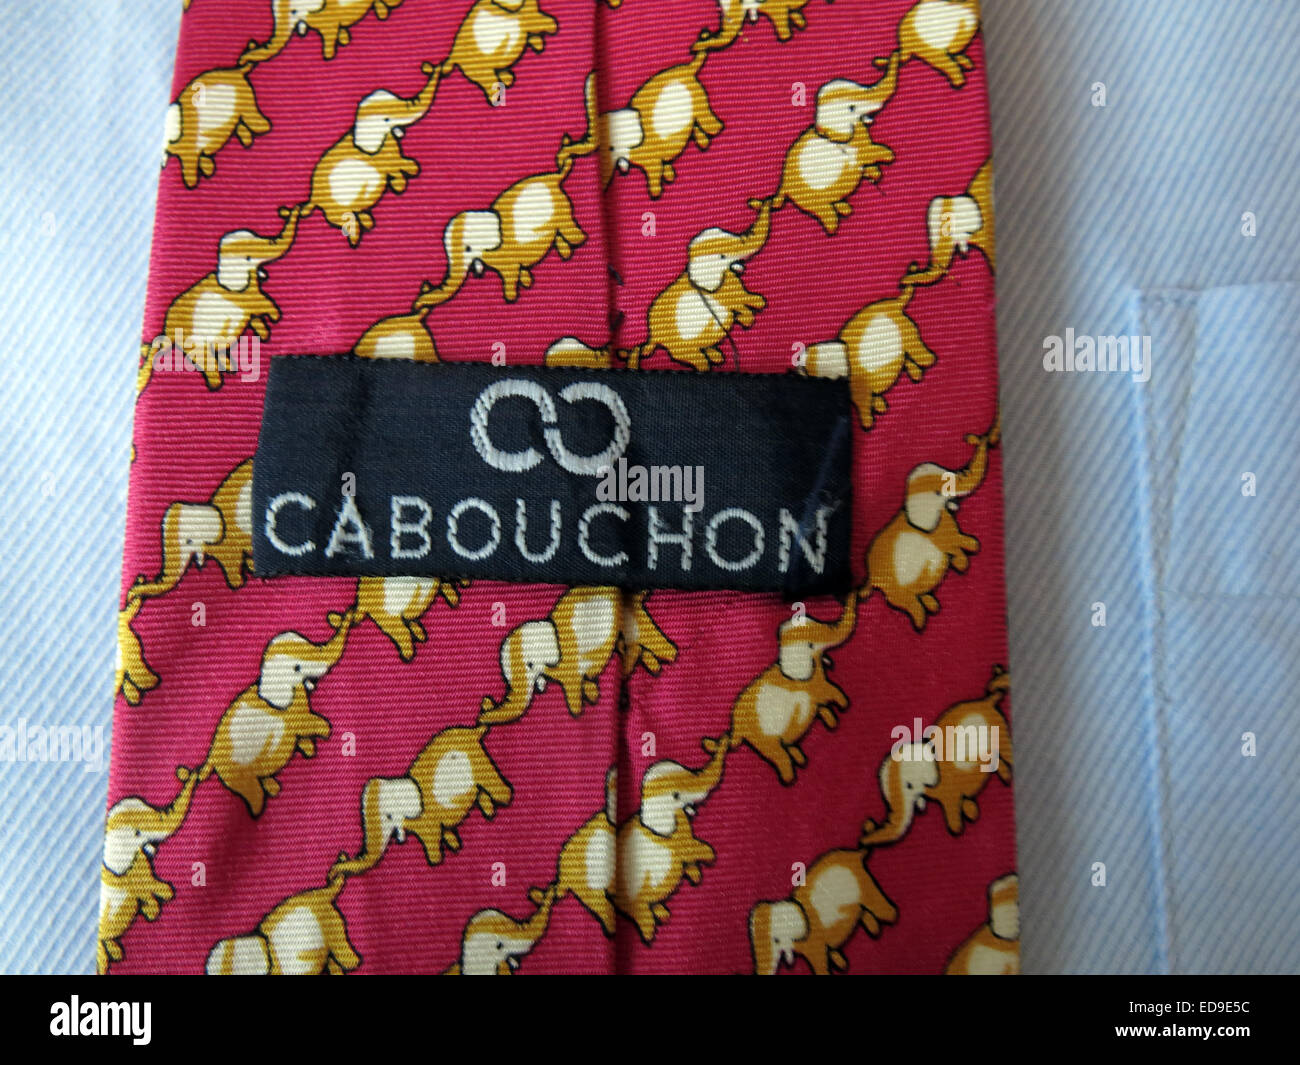 Interesting elephant Carbouchon vintage tie, male neckware in silk - Stock Image